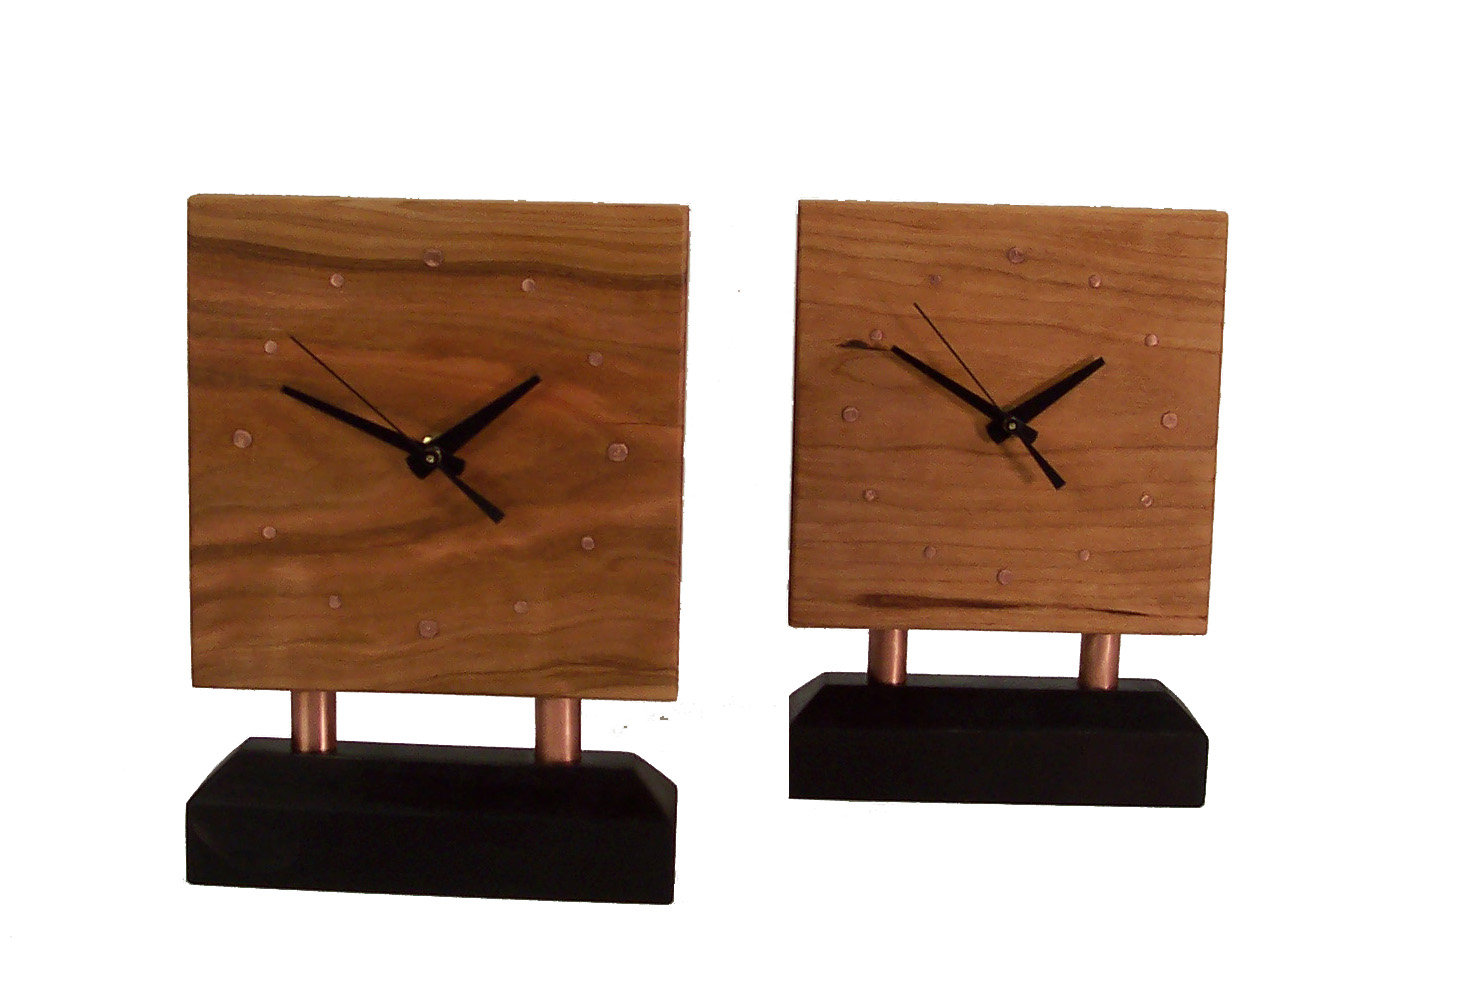 Tacks-1 Clock in Cherry - Wood Clock - by Desmond Suarez